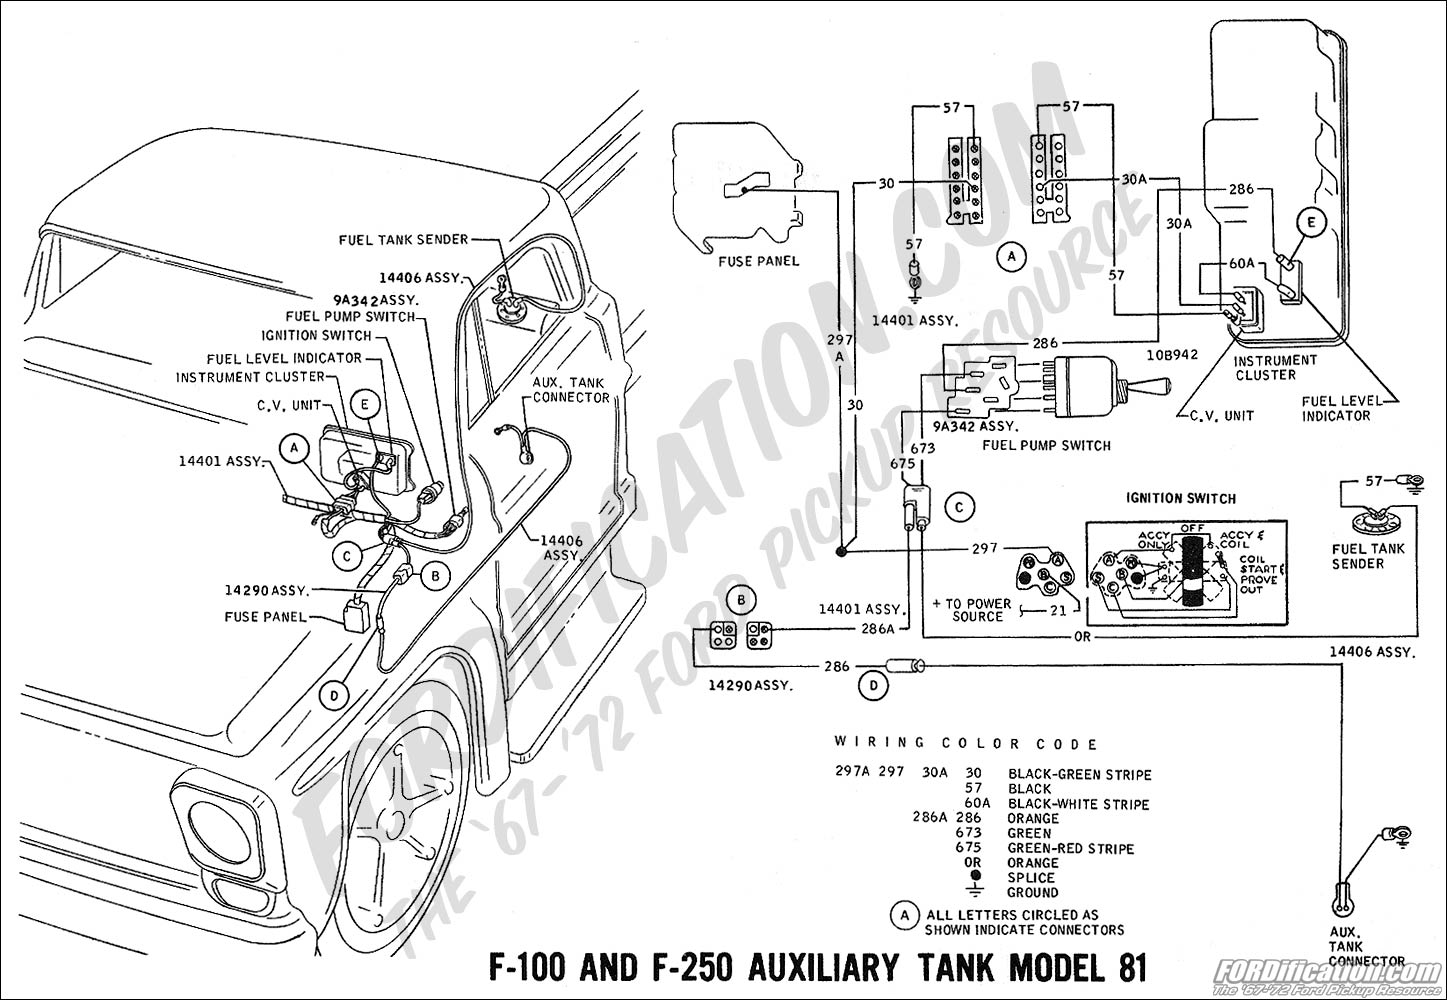 1970 ford f 250 wiring diagram enthusiast wiring diagrams u2022 rh bwpartnersautos com 1974 ford ignition wiring diagram 1974 ford maverick wiring diagram